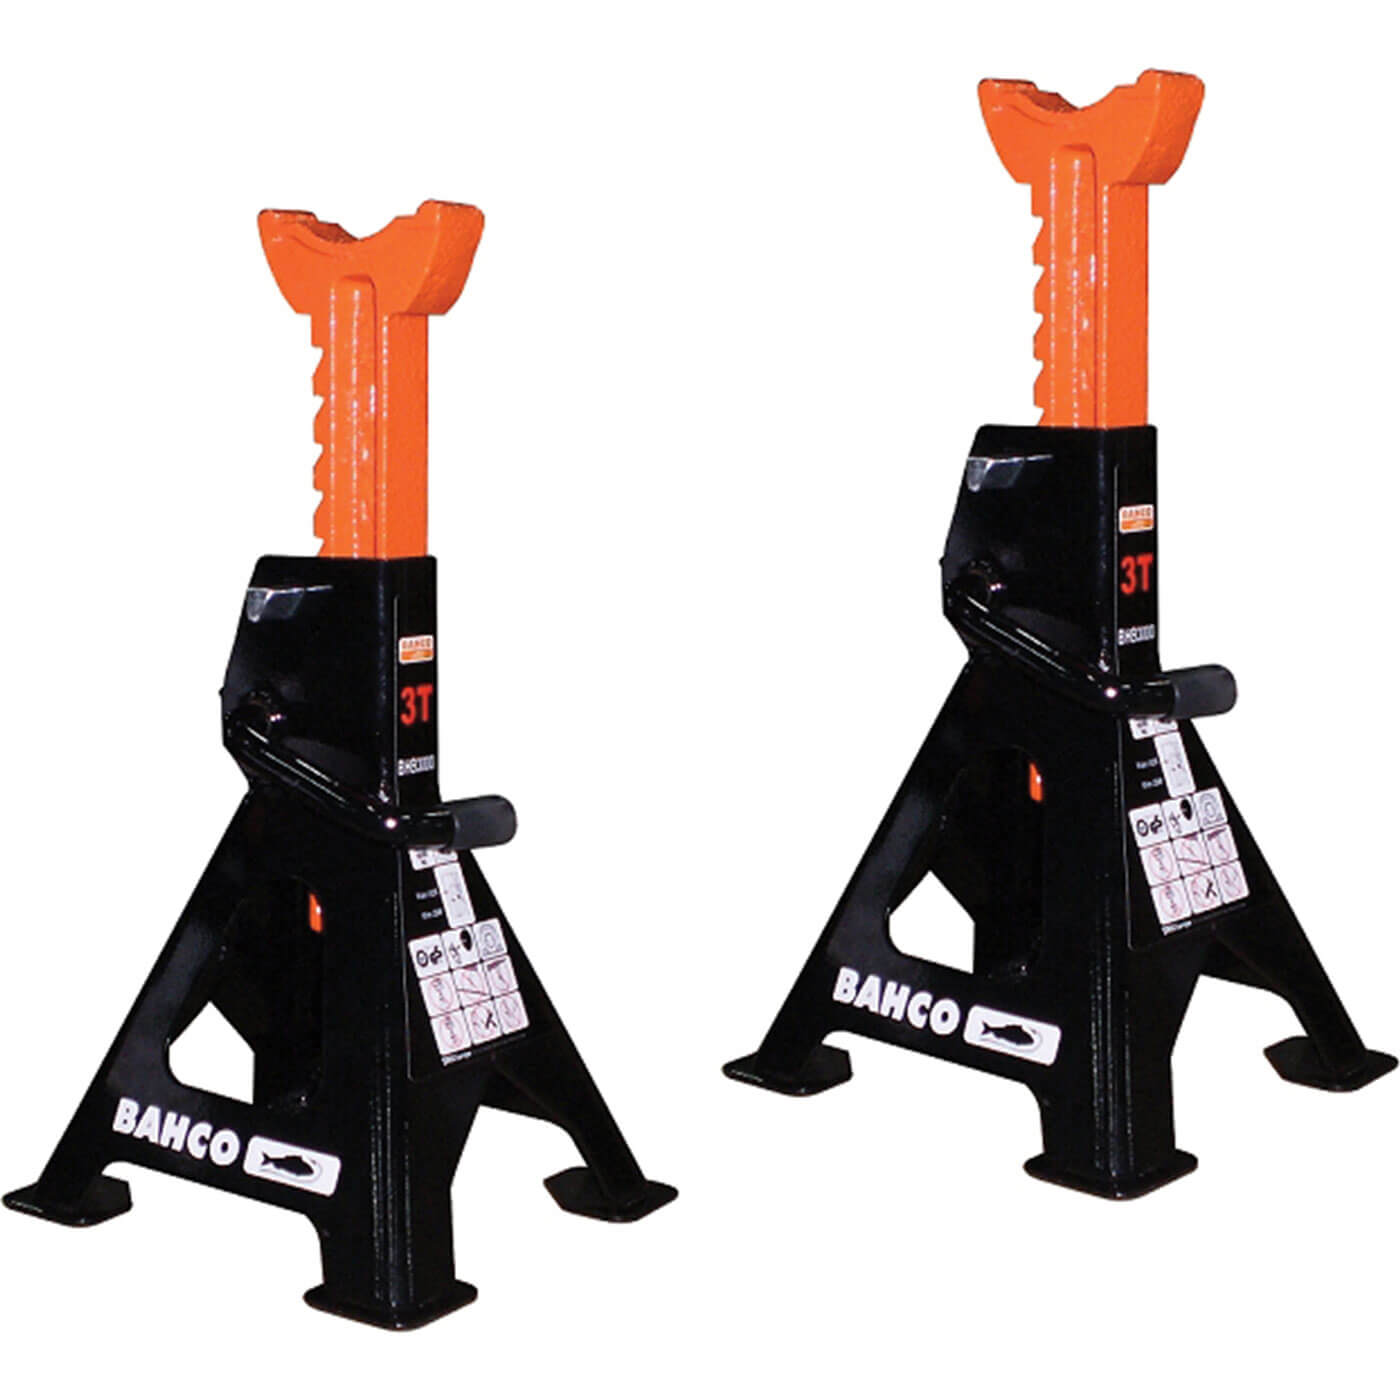 Bahco 1.5t Axle Stands 3t per Pair